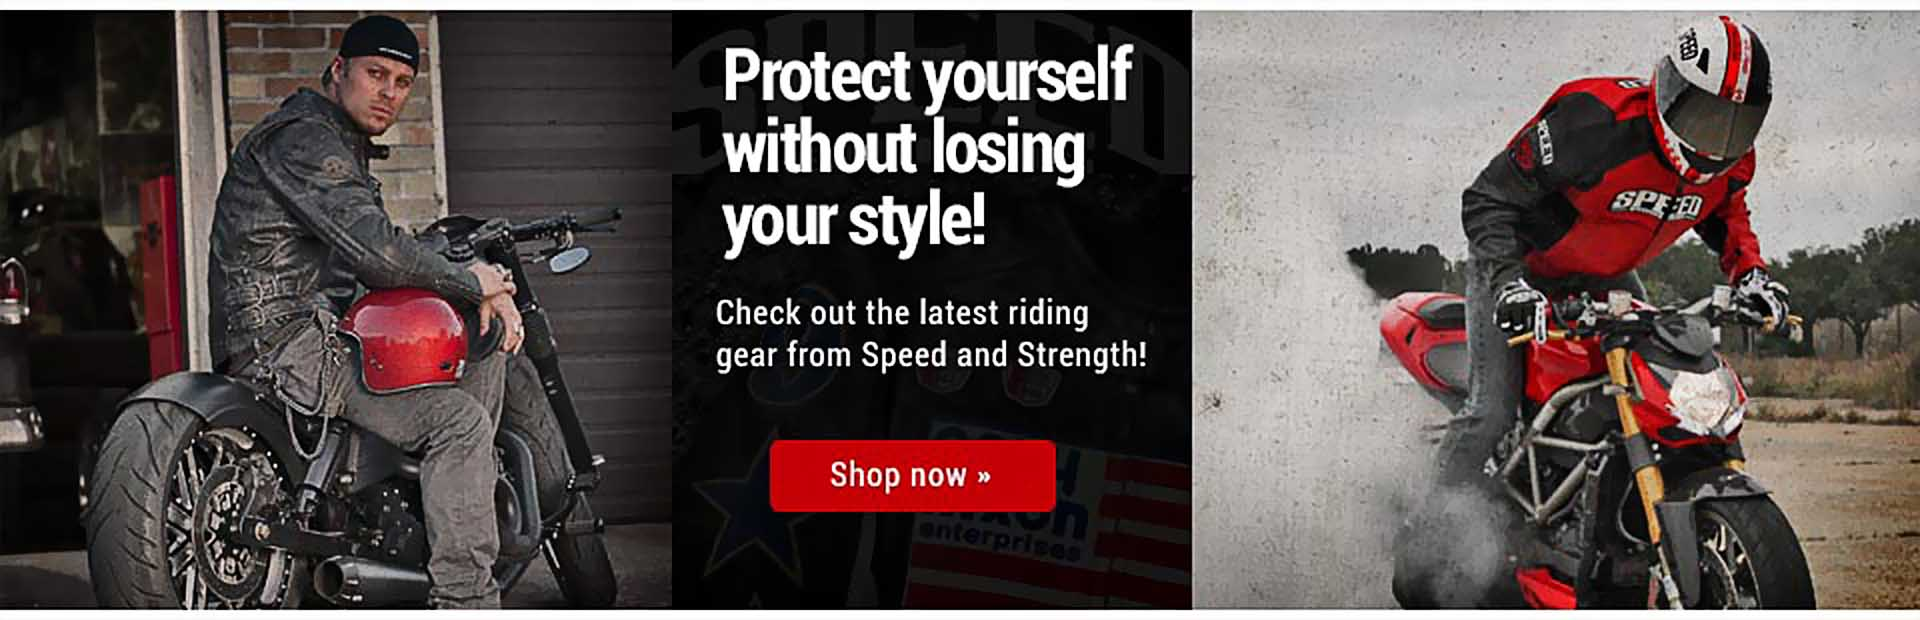 Browse Speed and Strength riding gear online.